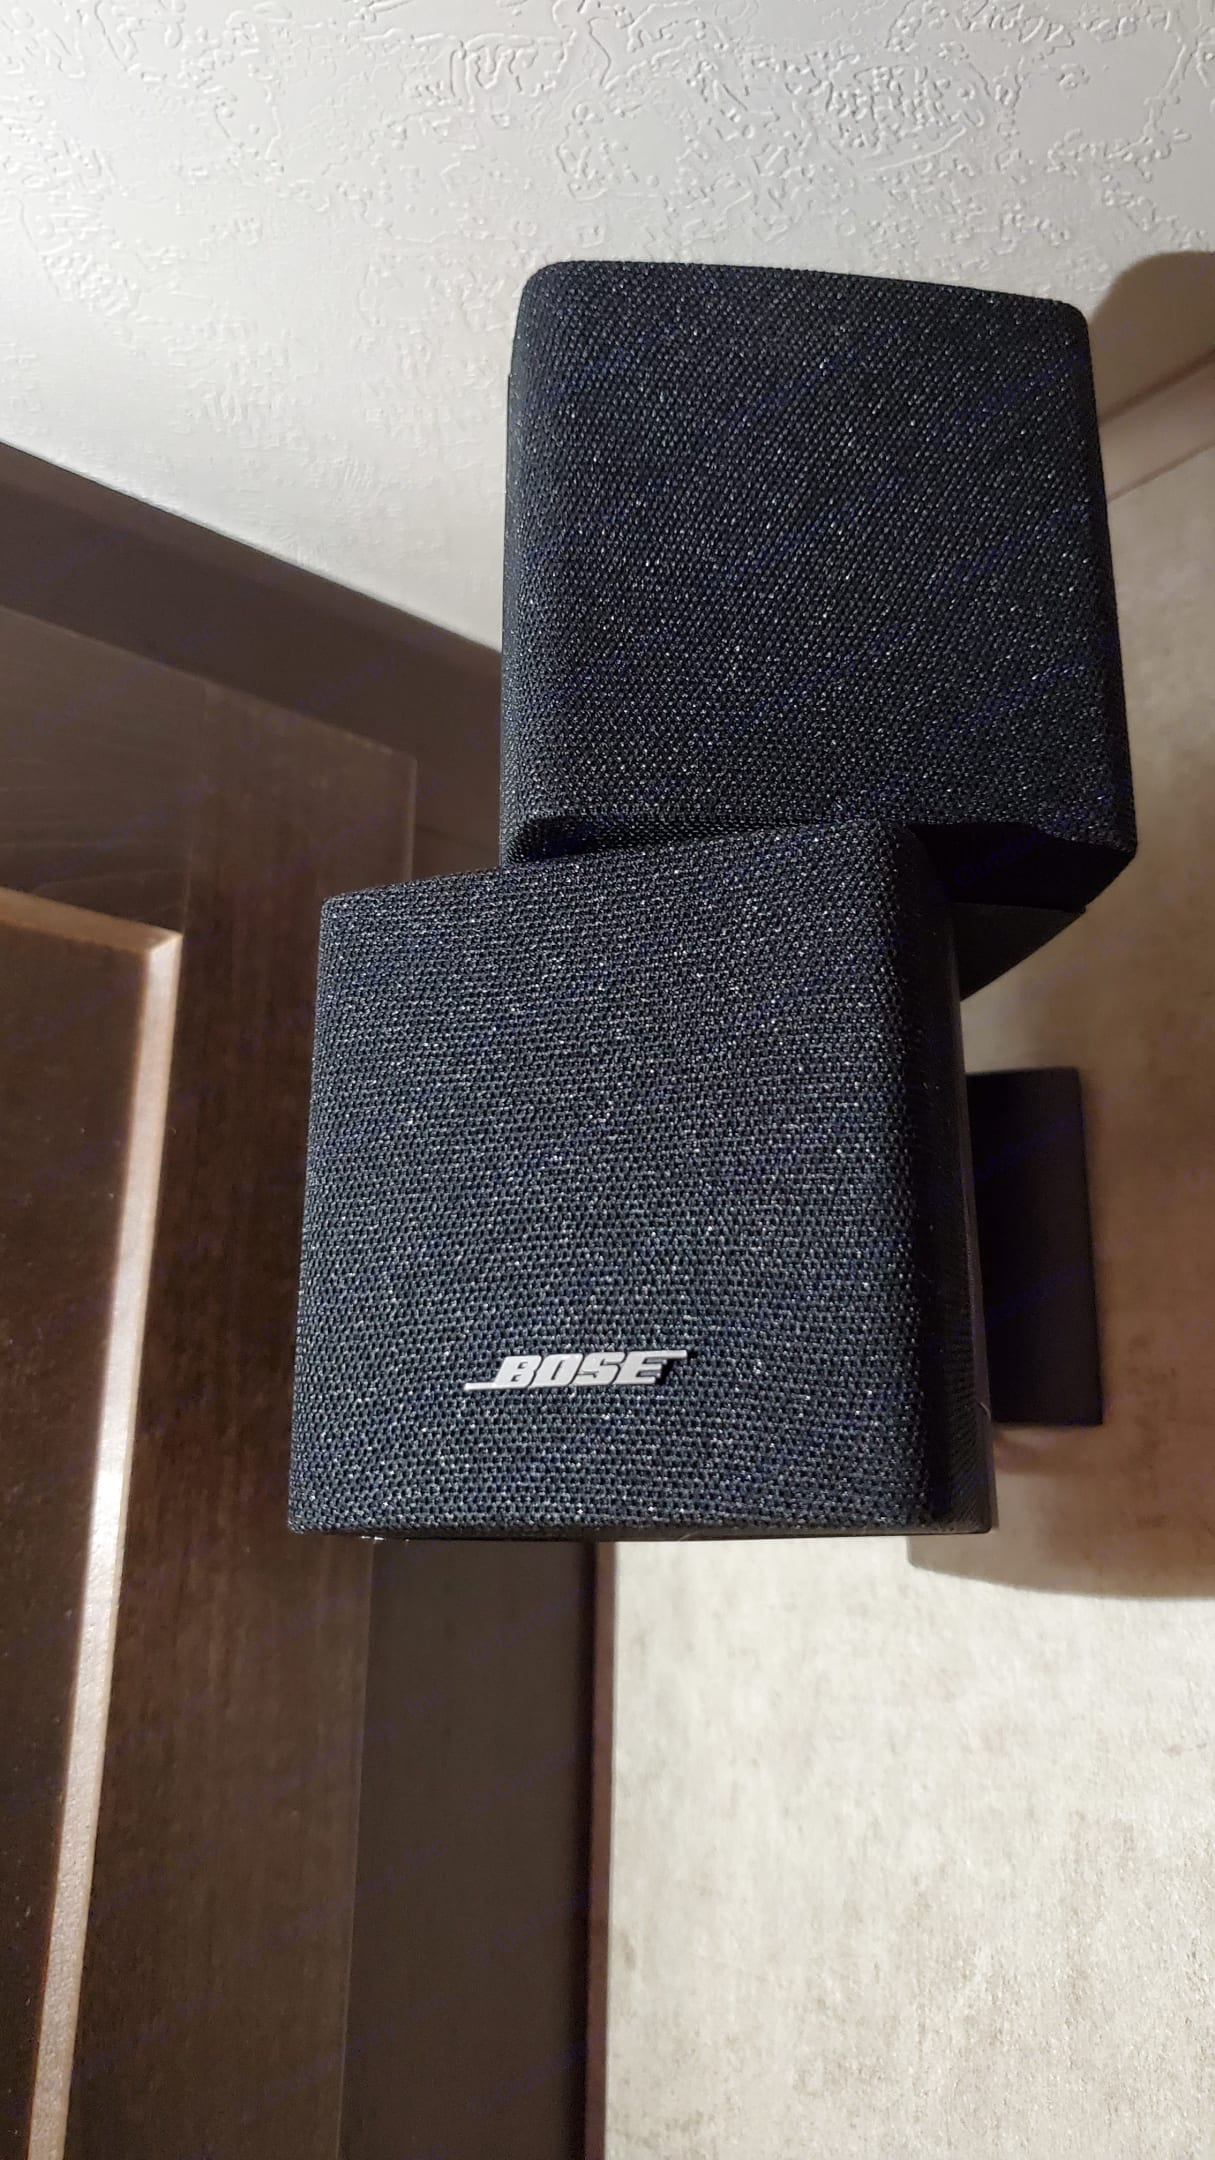 Bose Surround Sound with a powerful subwoofer. (10 speakers total). Forest River Cherokee 2017